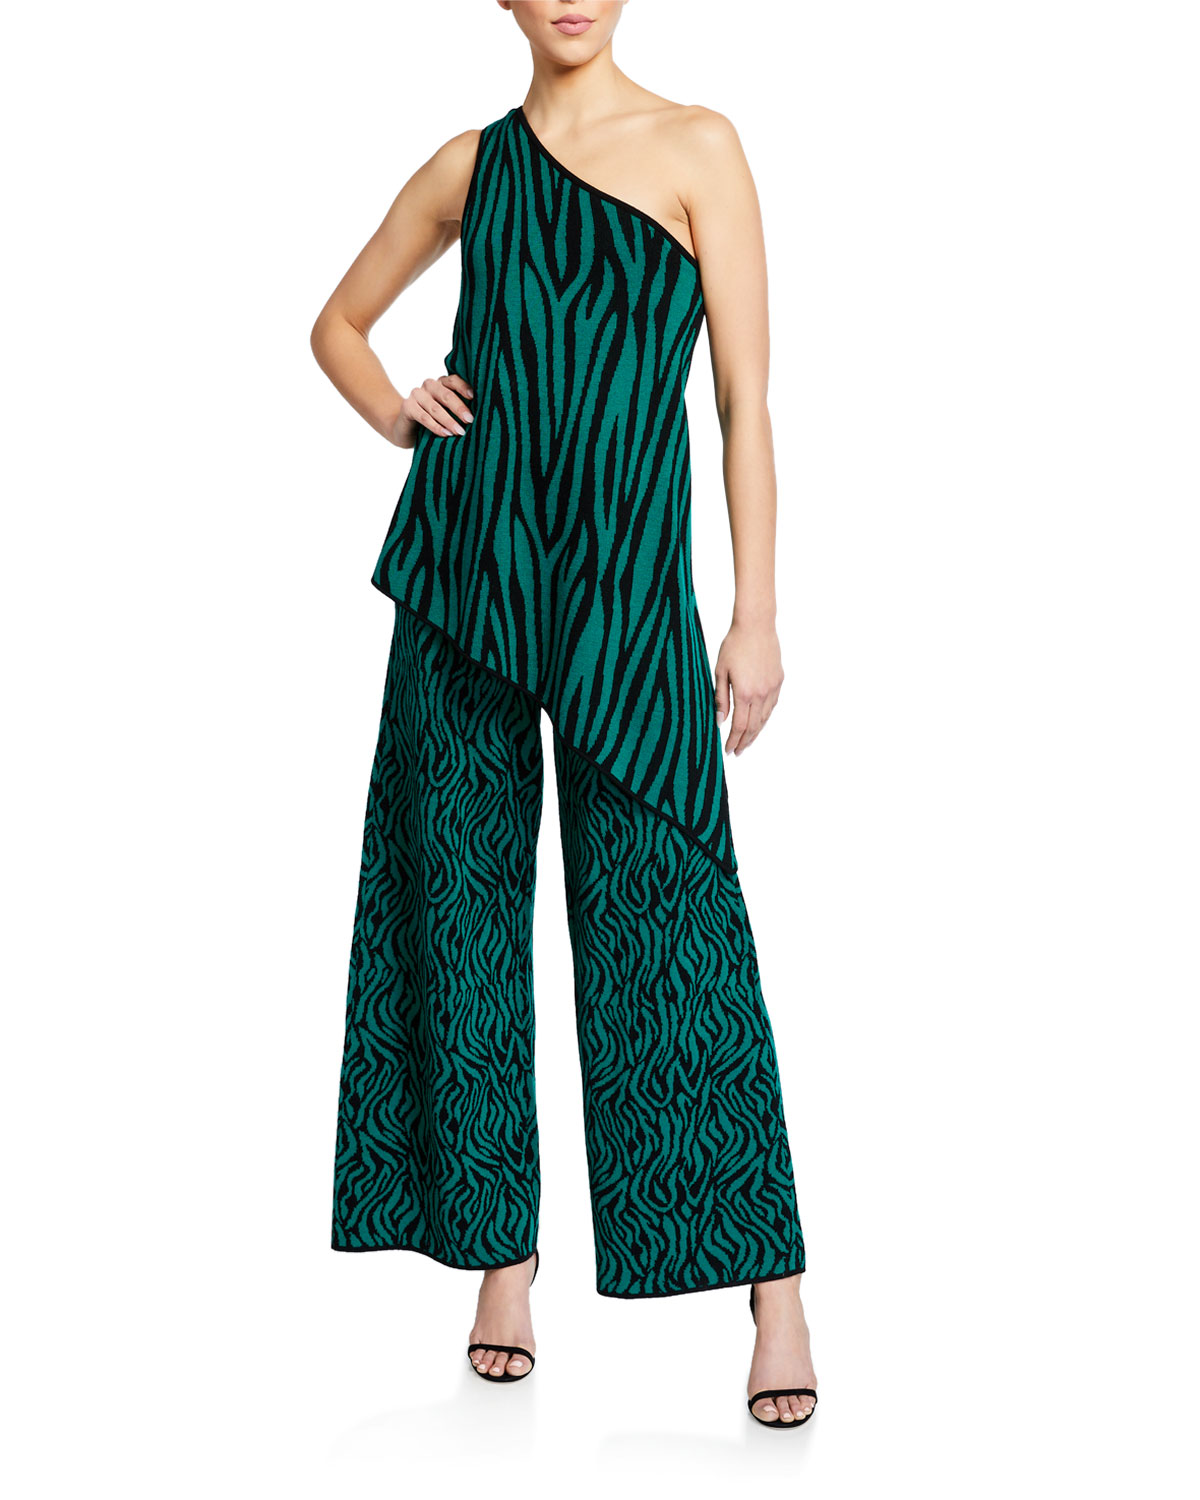 Victor Glemaud One-Shoulder Zebra-Print Jumpsuit with Overlay